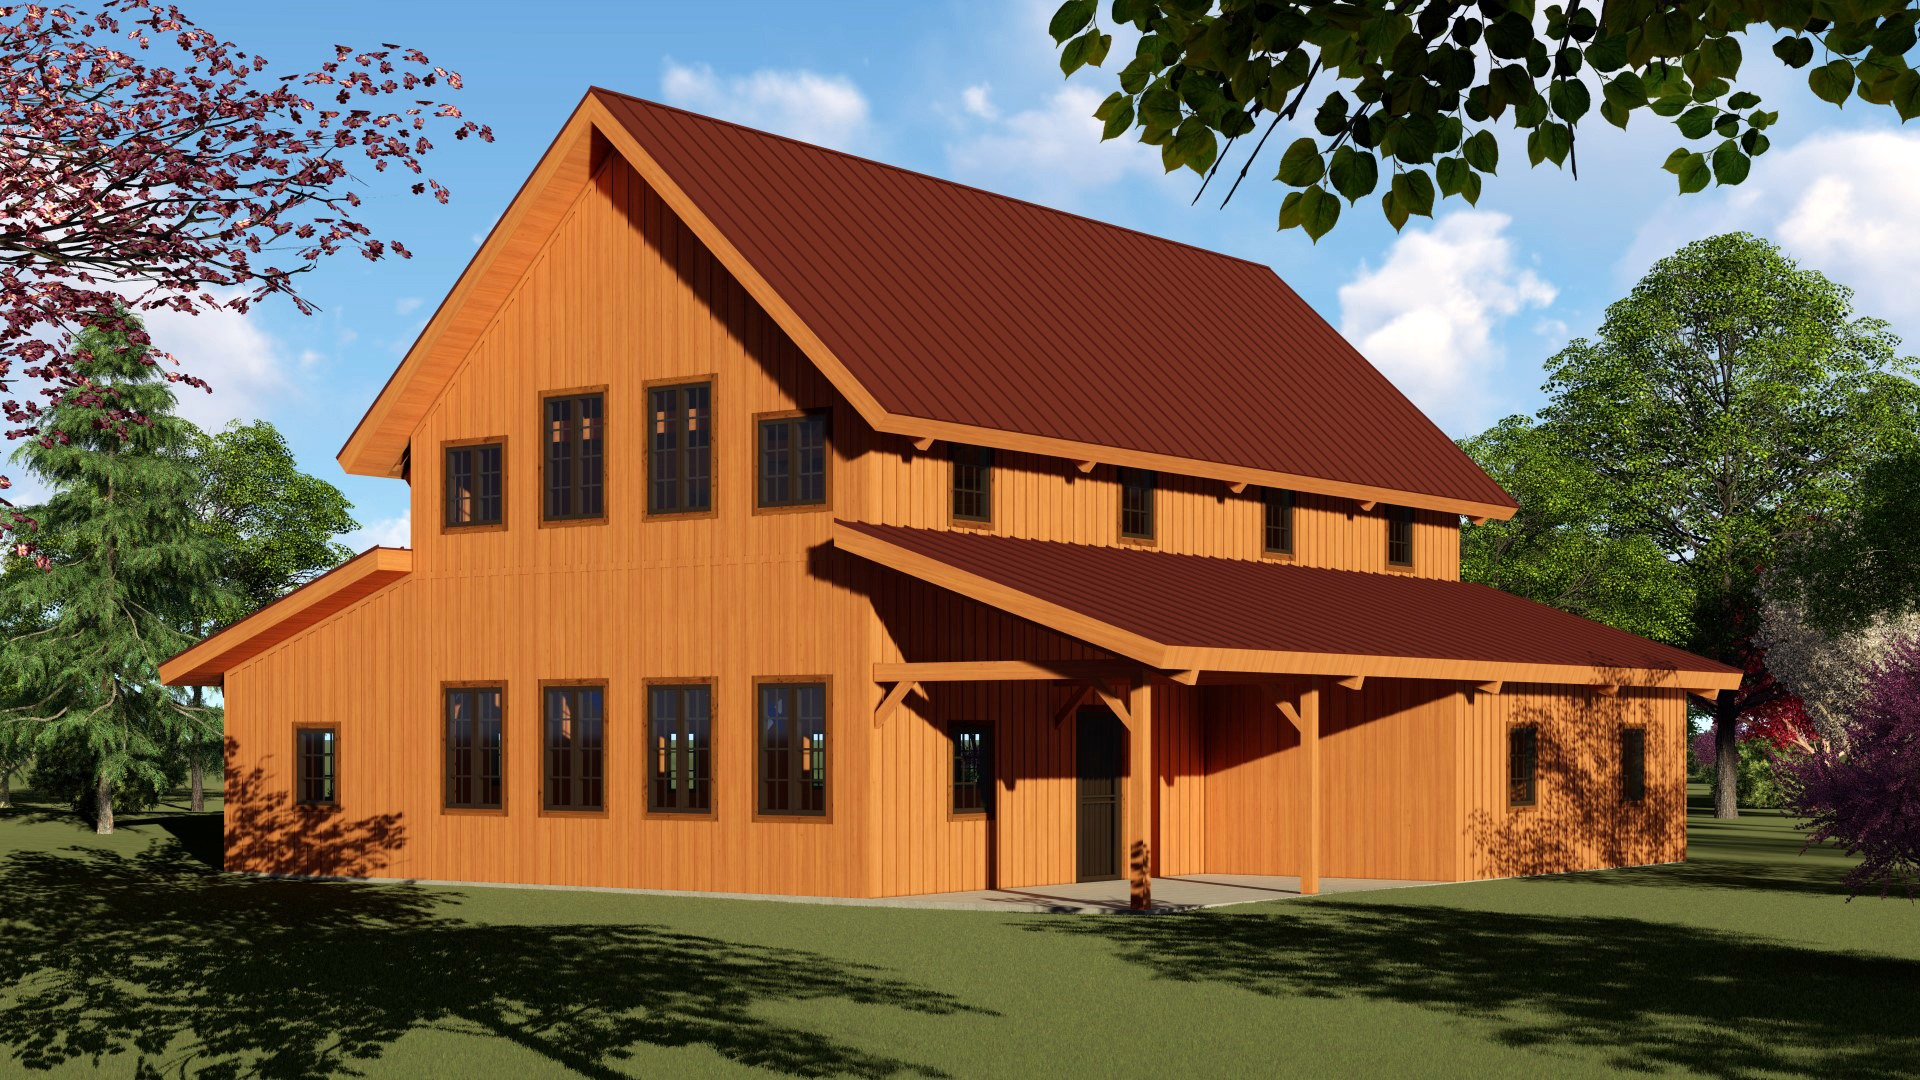 barn home post and beam raised center with picture windows and covered porch